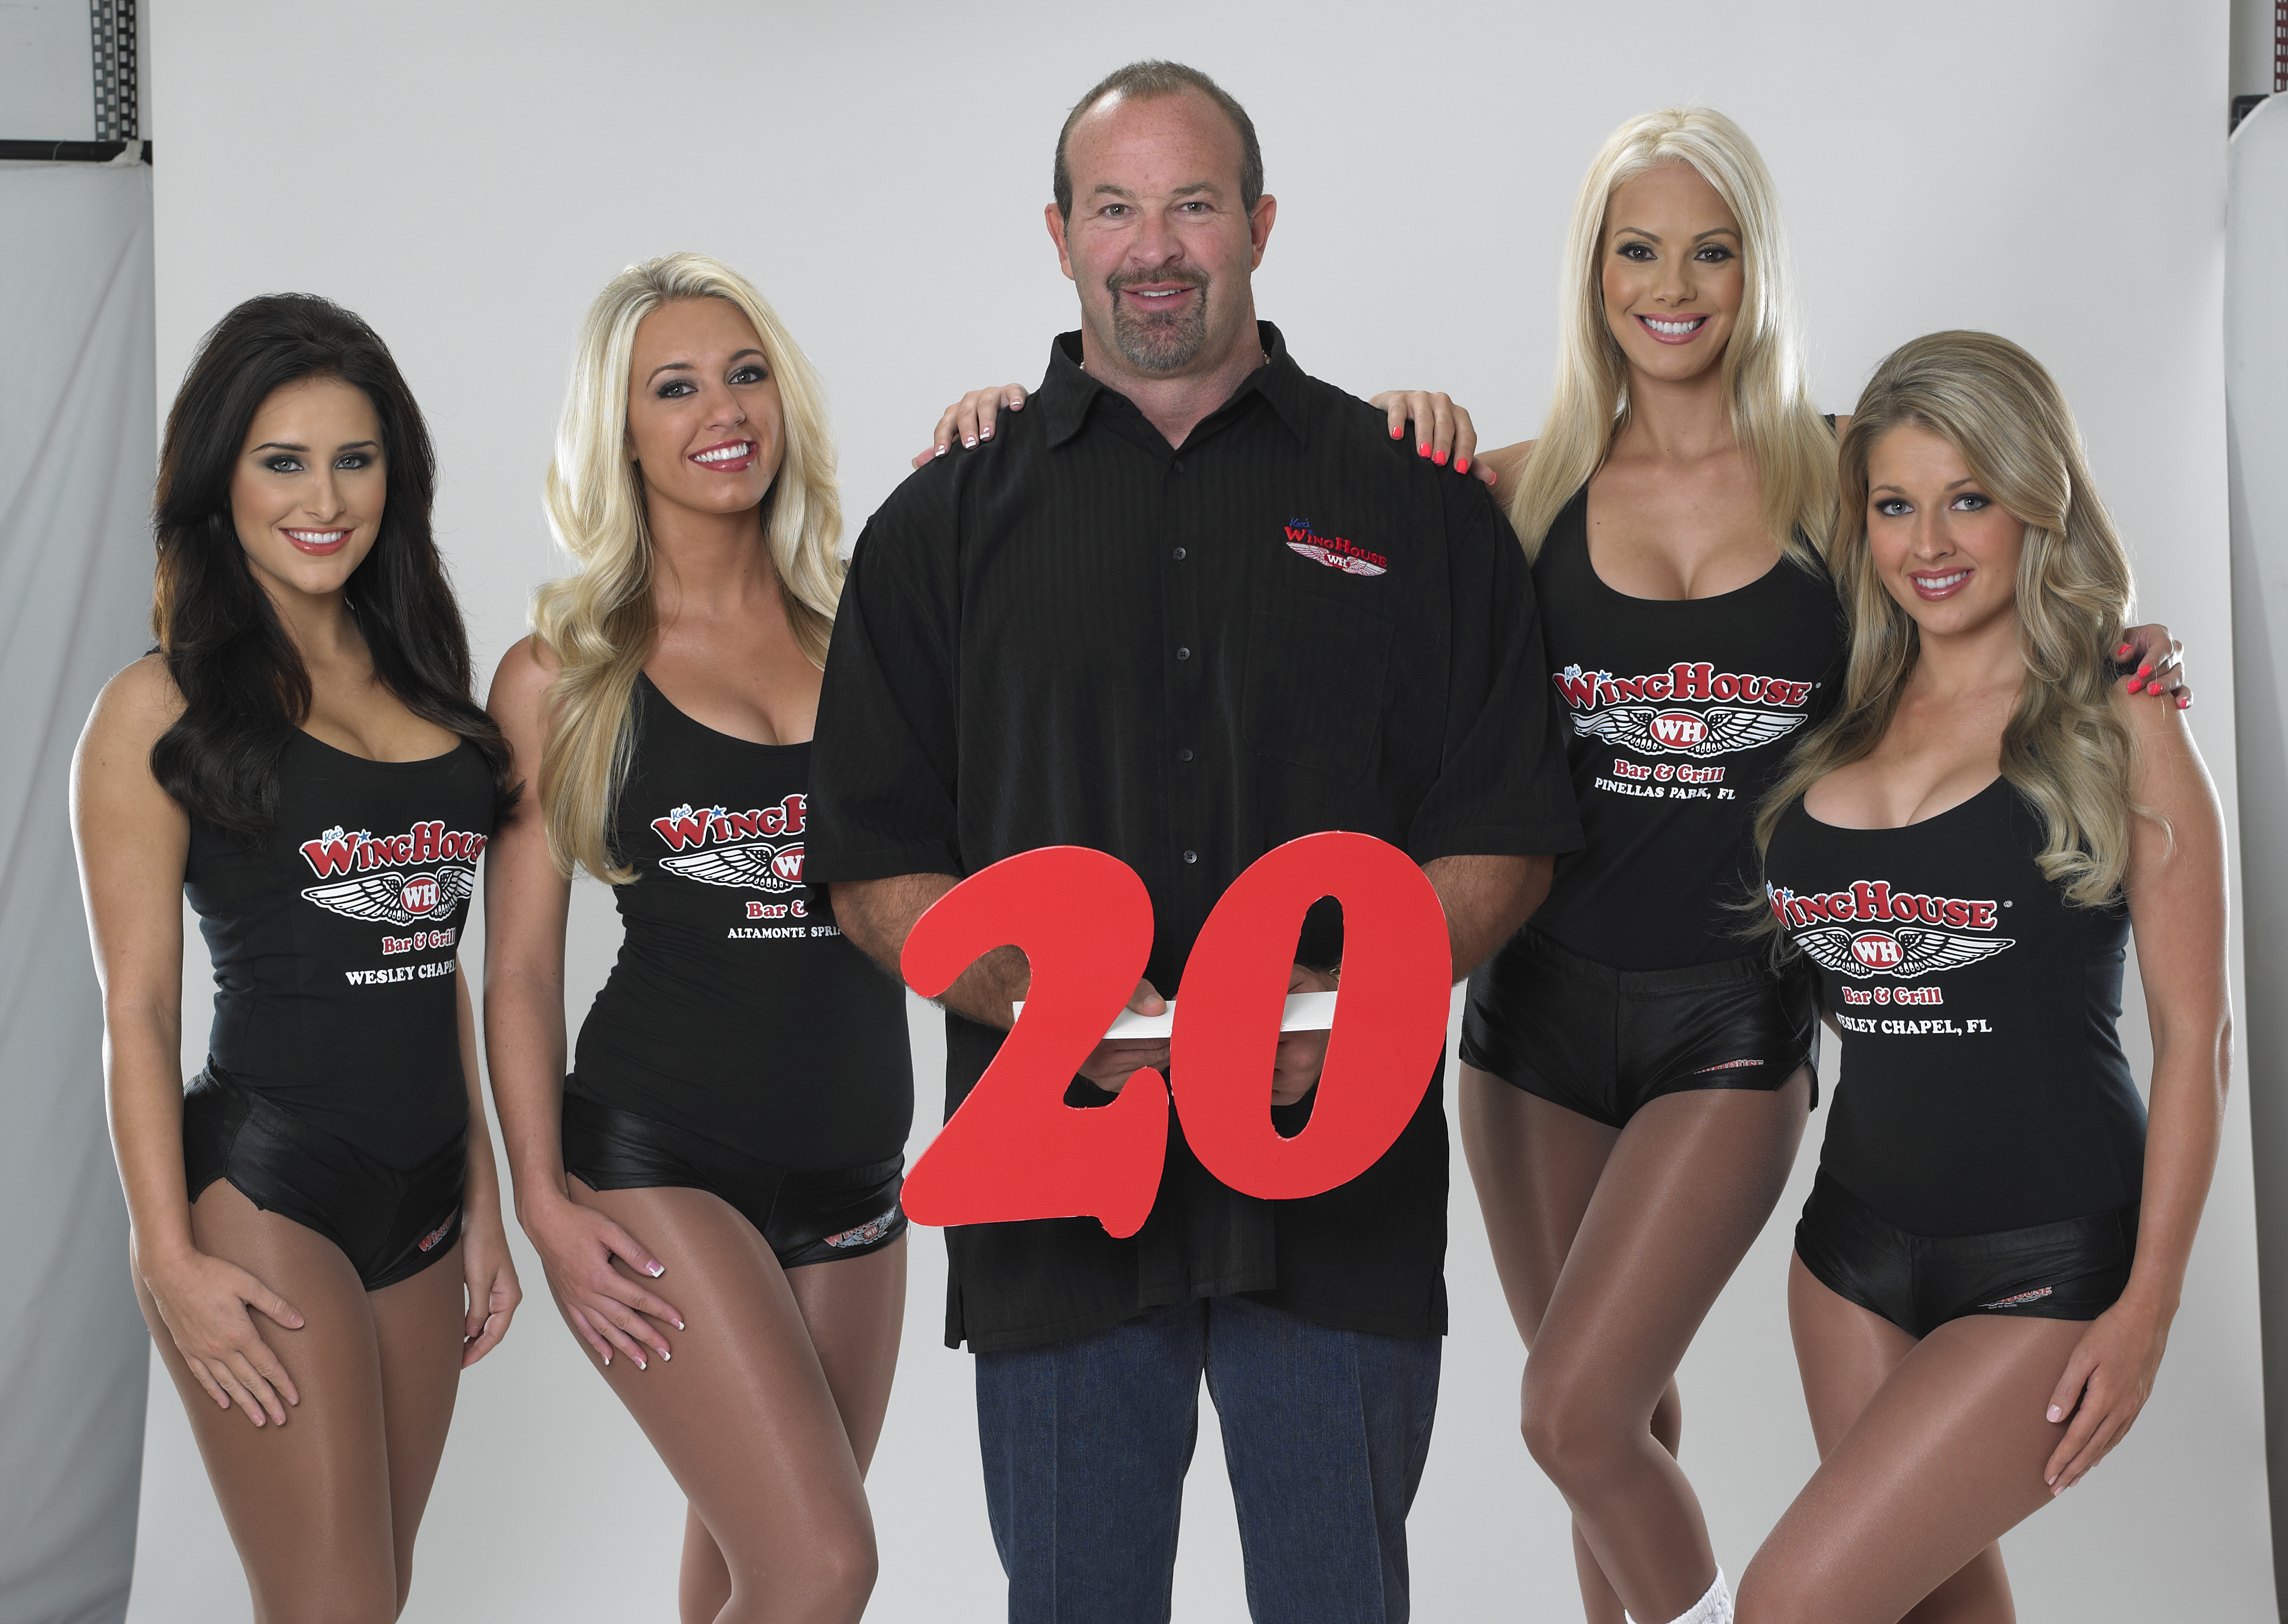 Captivating File:Crawford And WingHouse Girls